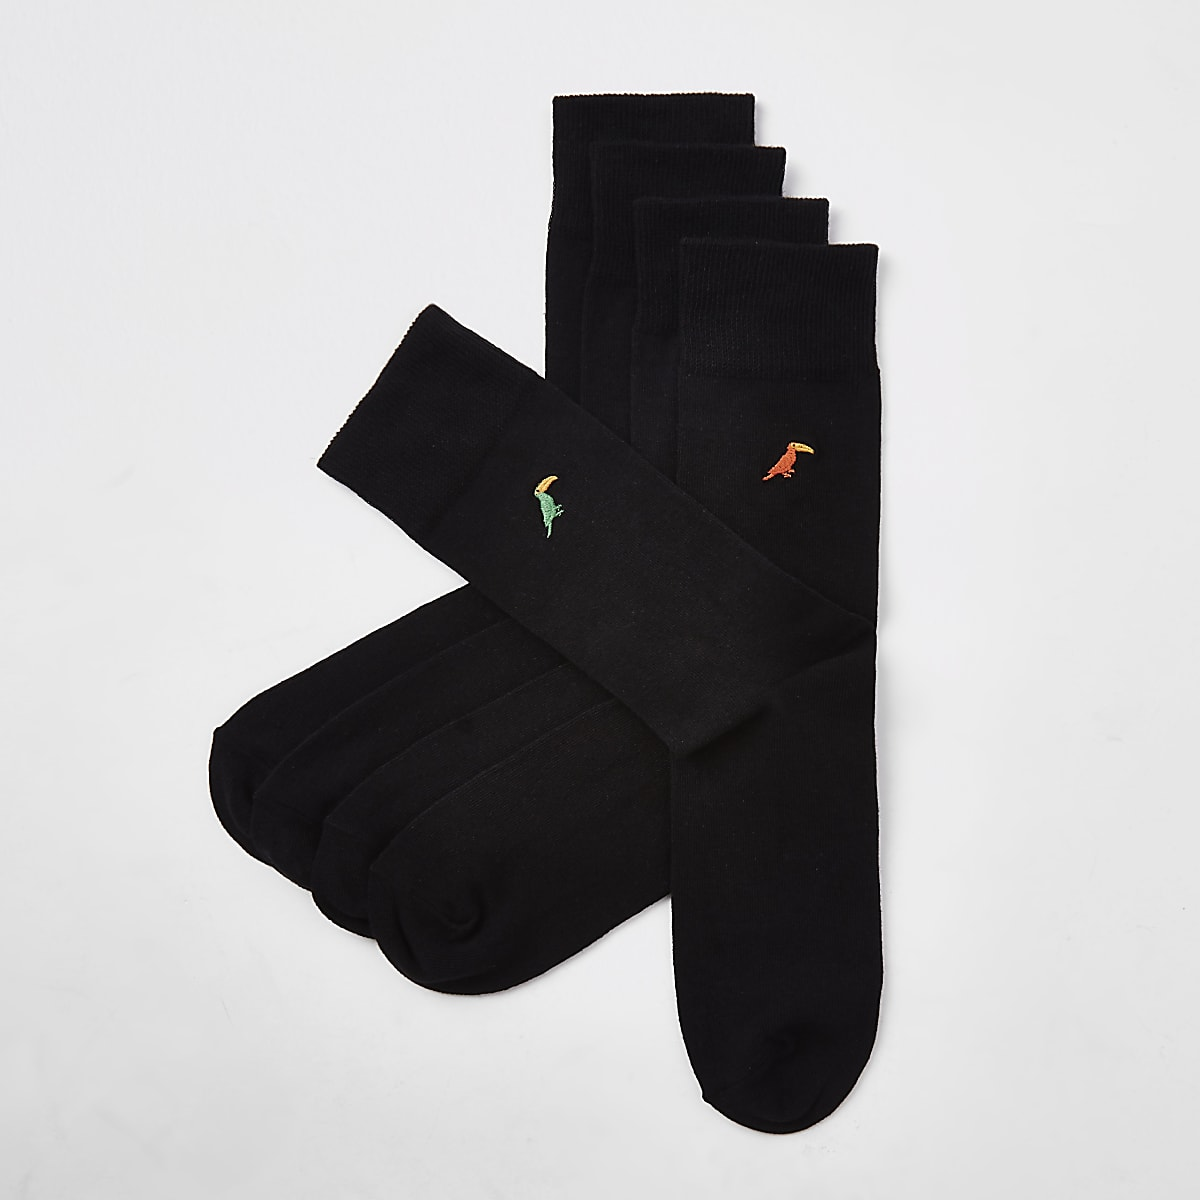 Black toucan embroidered socks 5 pack